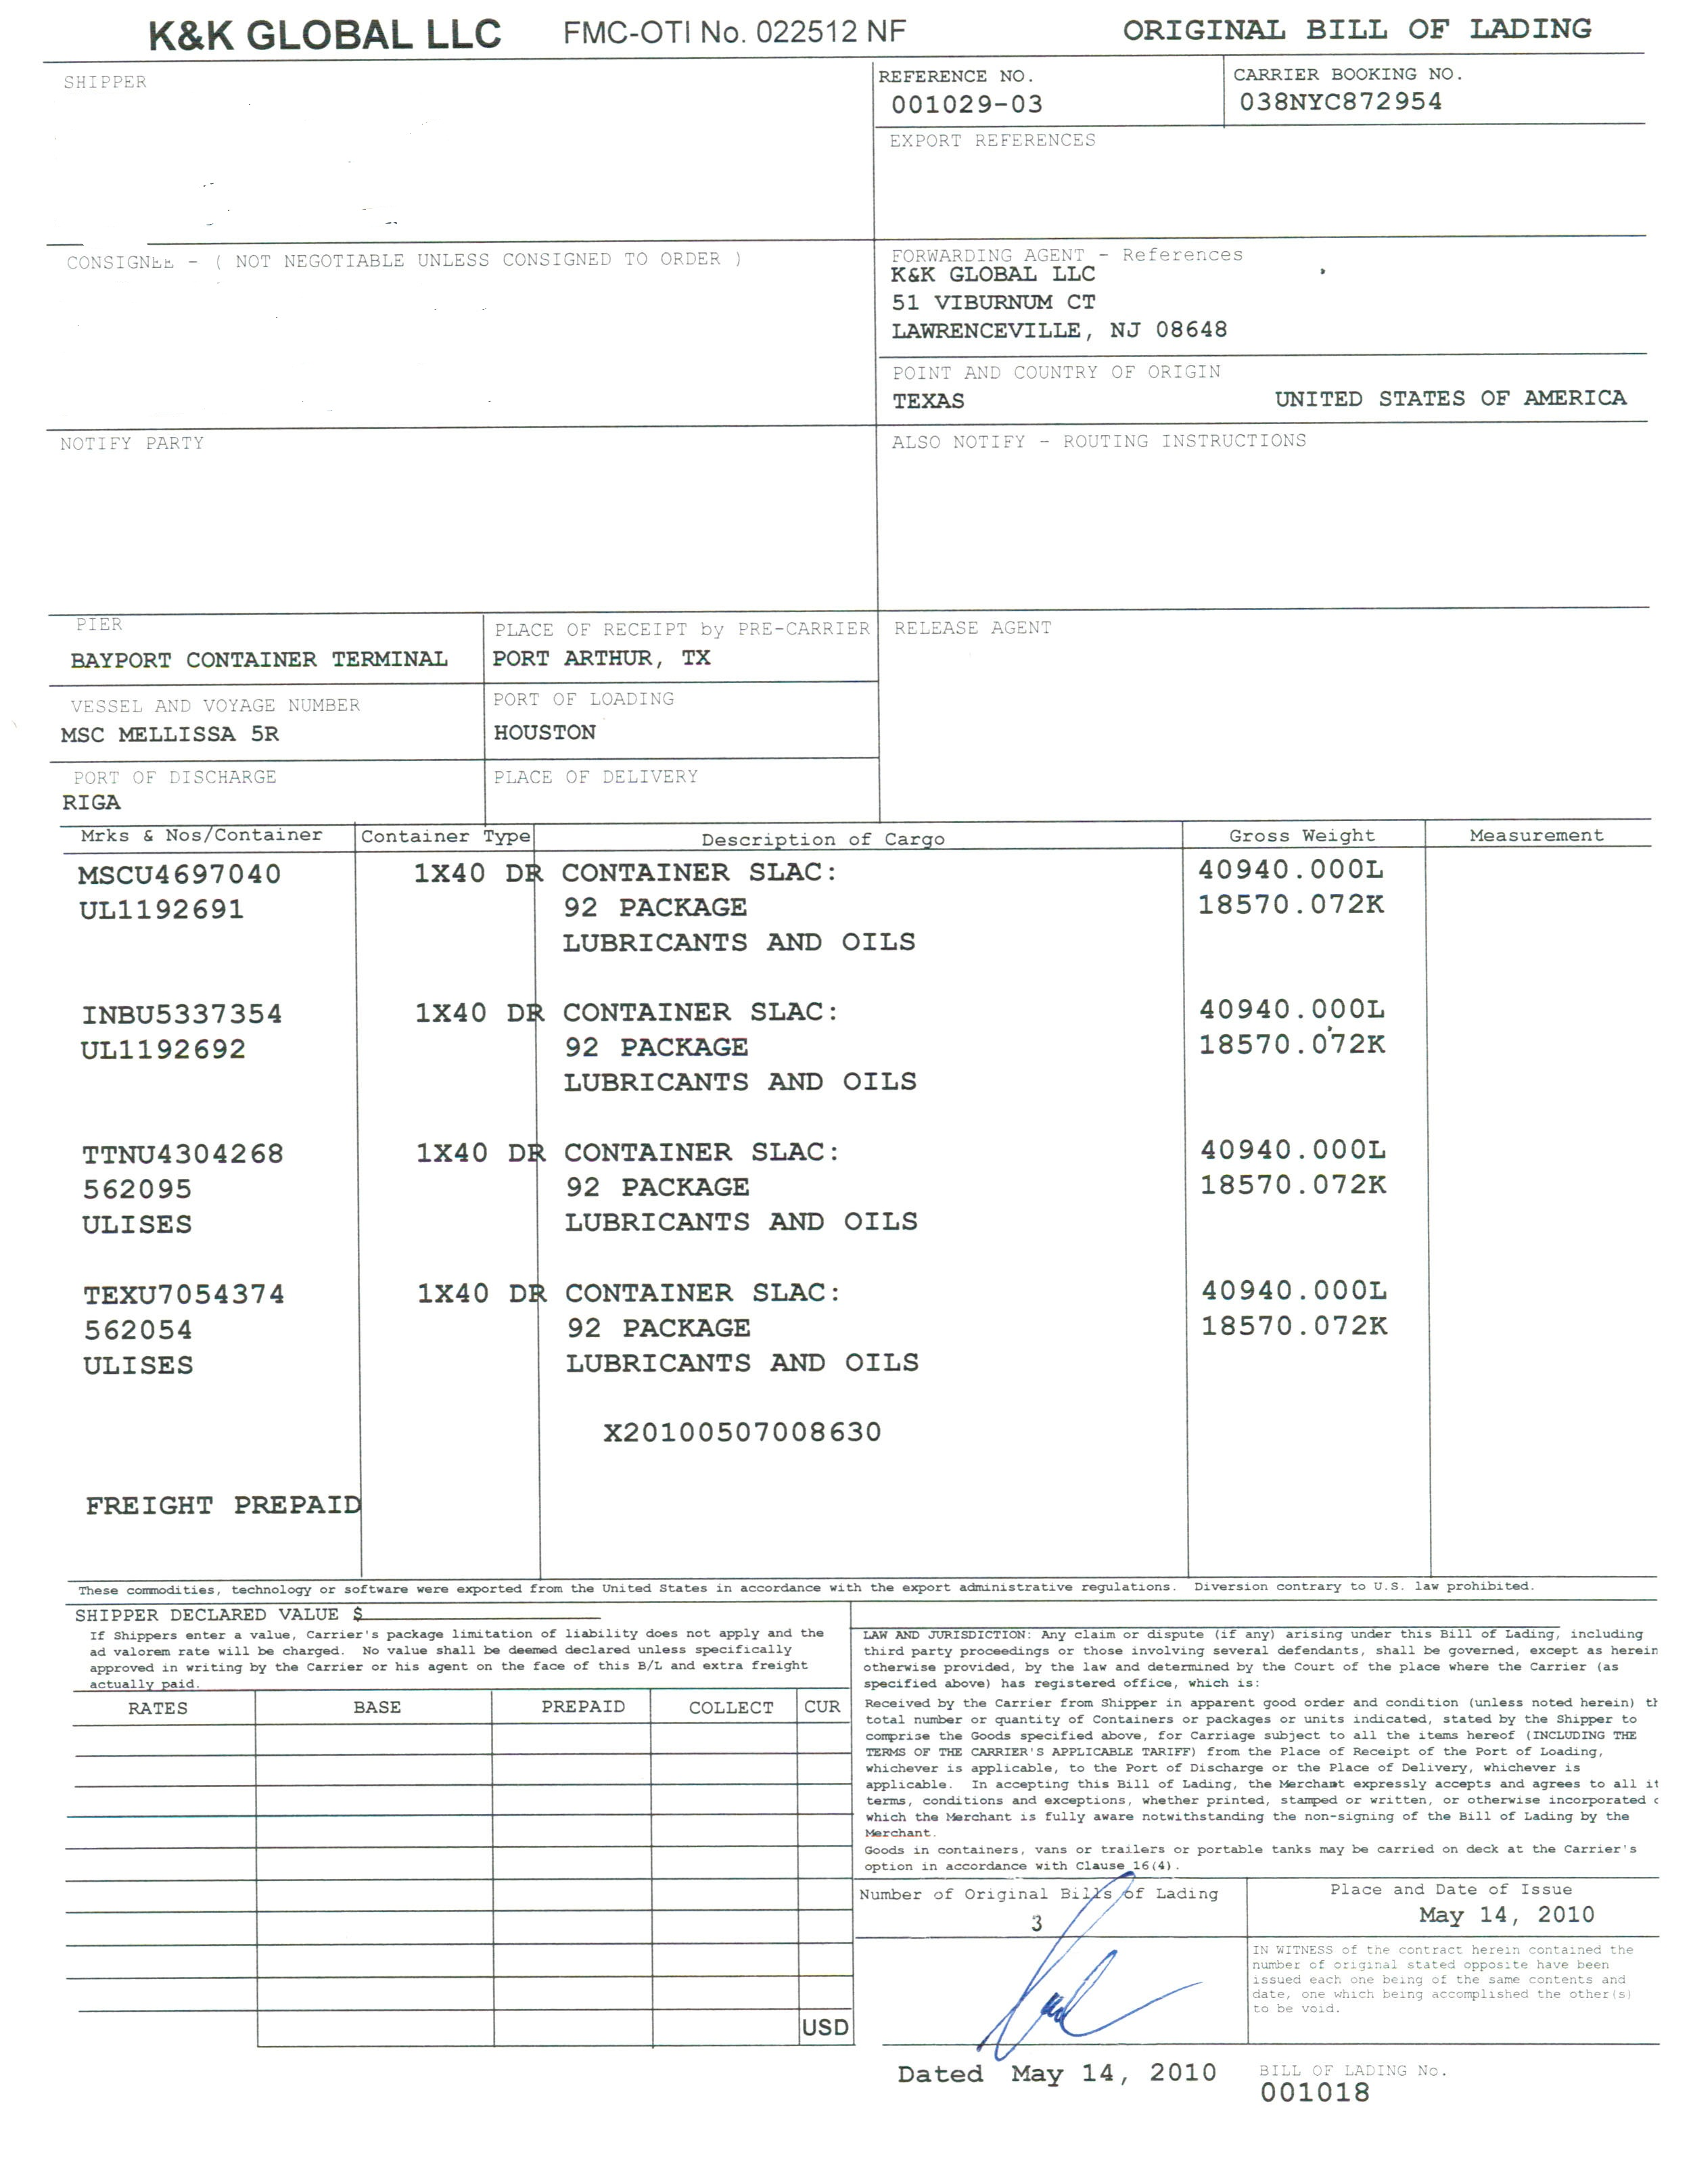 bill of lading document